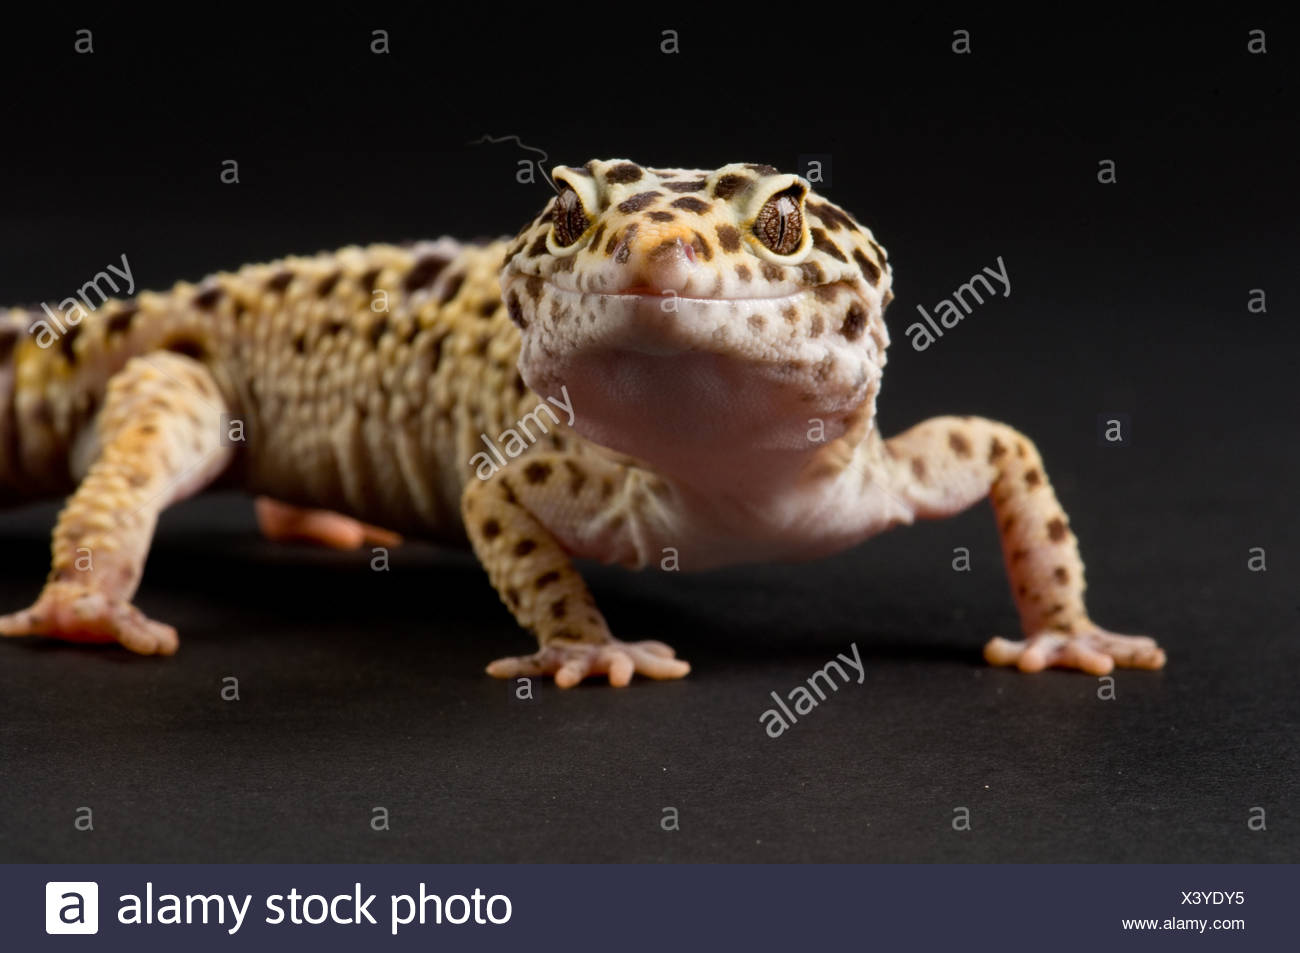 A Leopard Gecko Eublpharis Macularis From The Lincoln Childrens Zoo